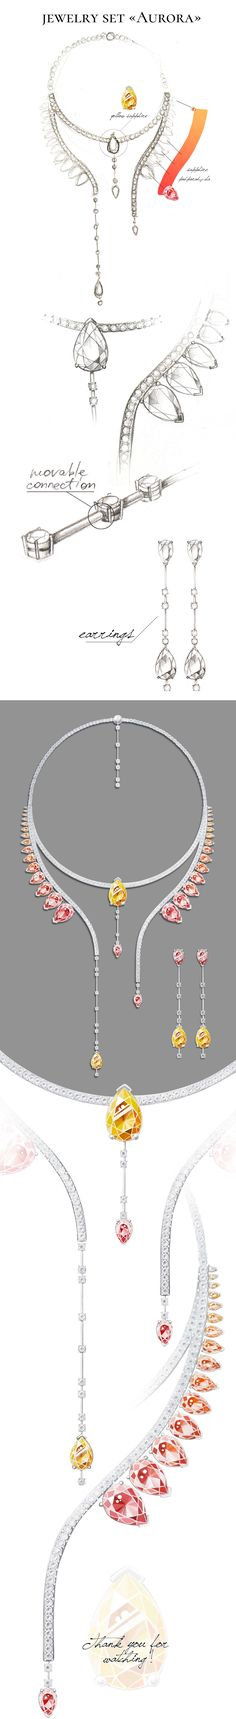 jewelry set «Aurora»-Jewel Design Competition, 2016